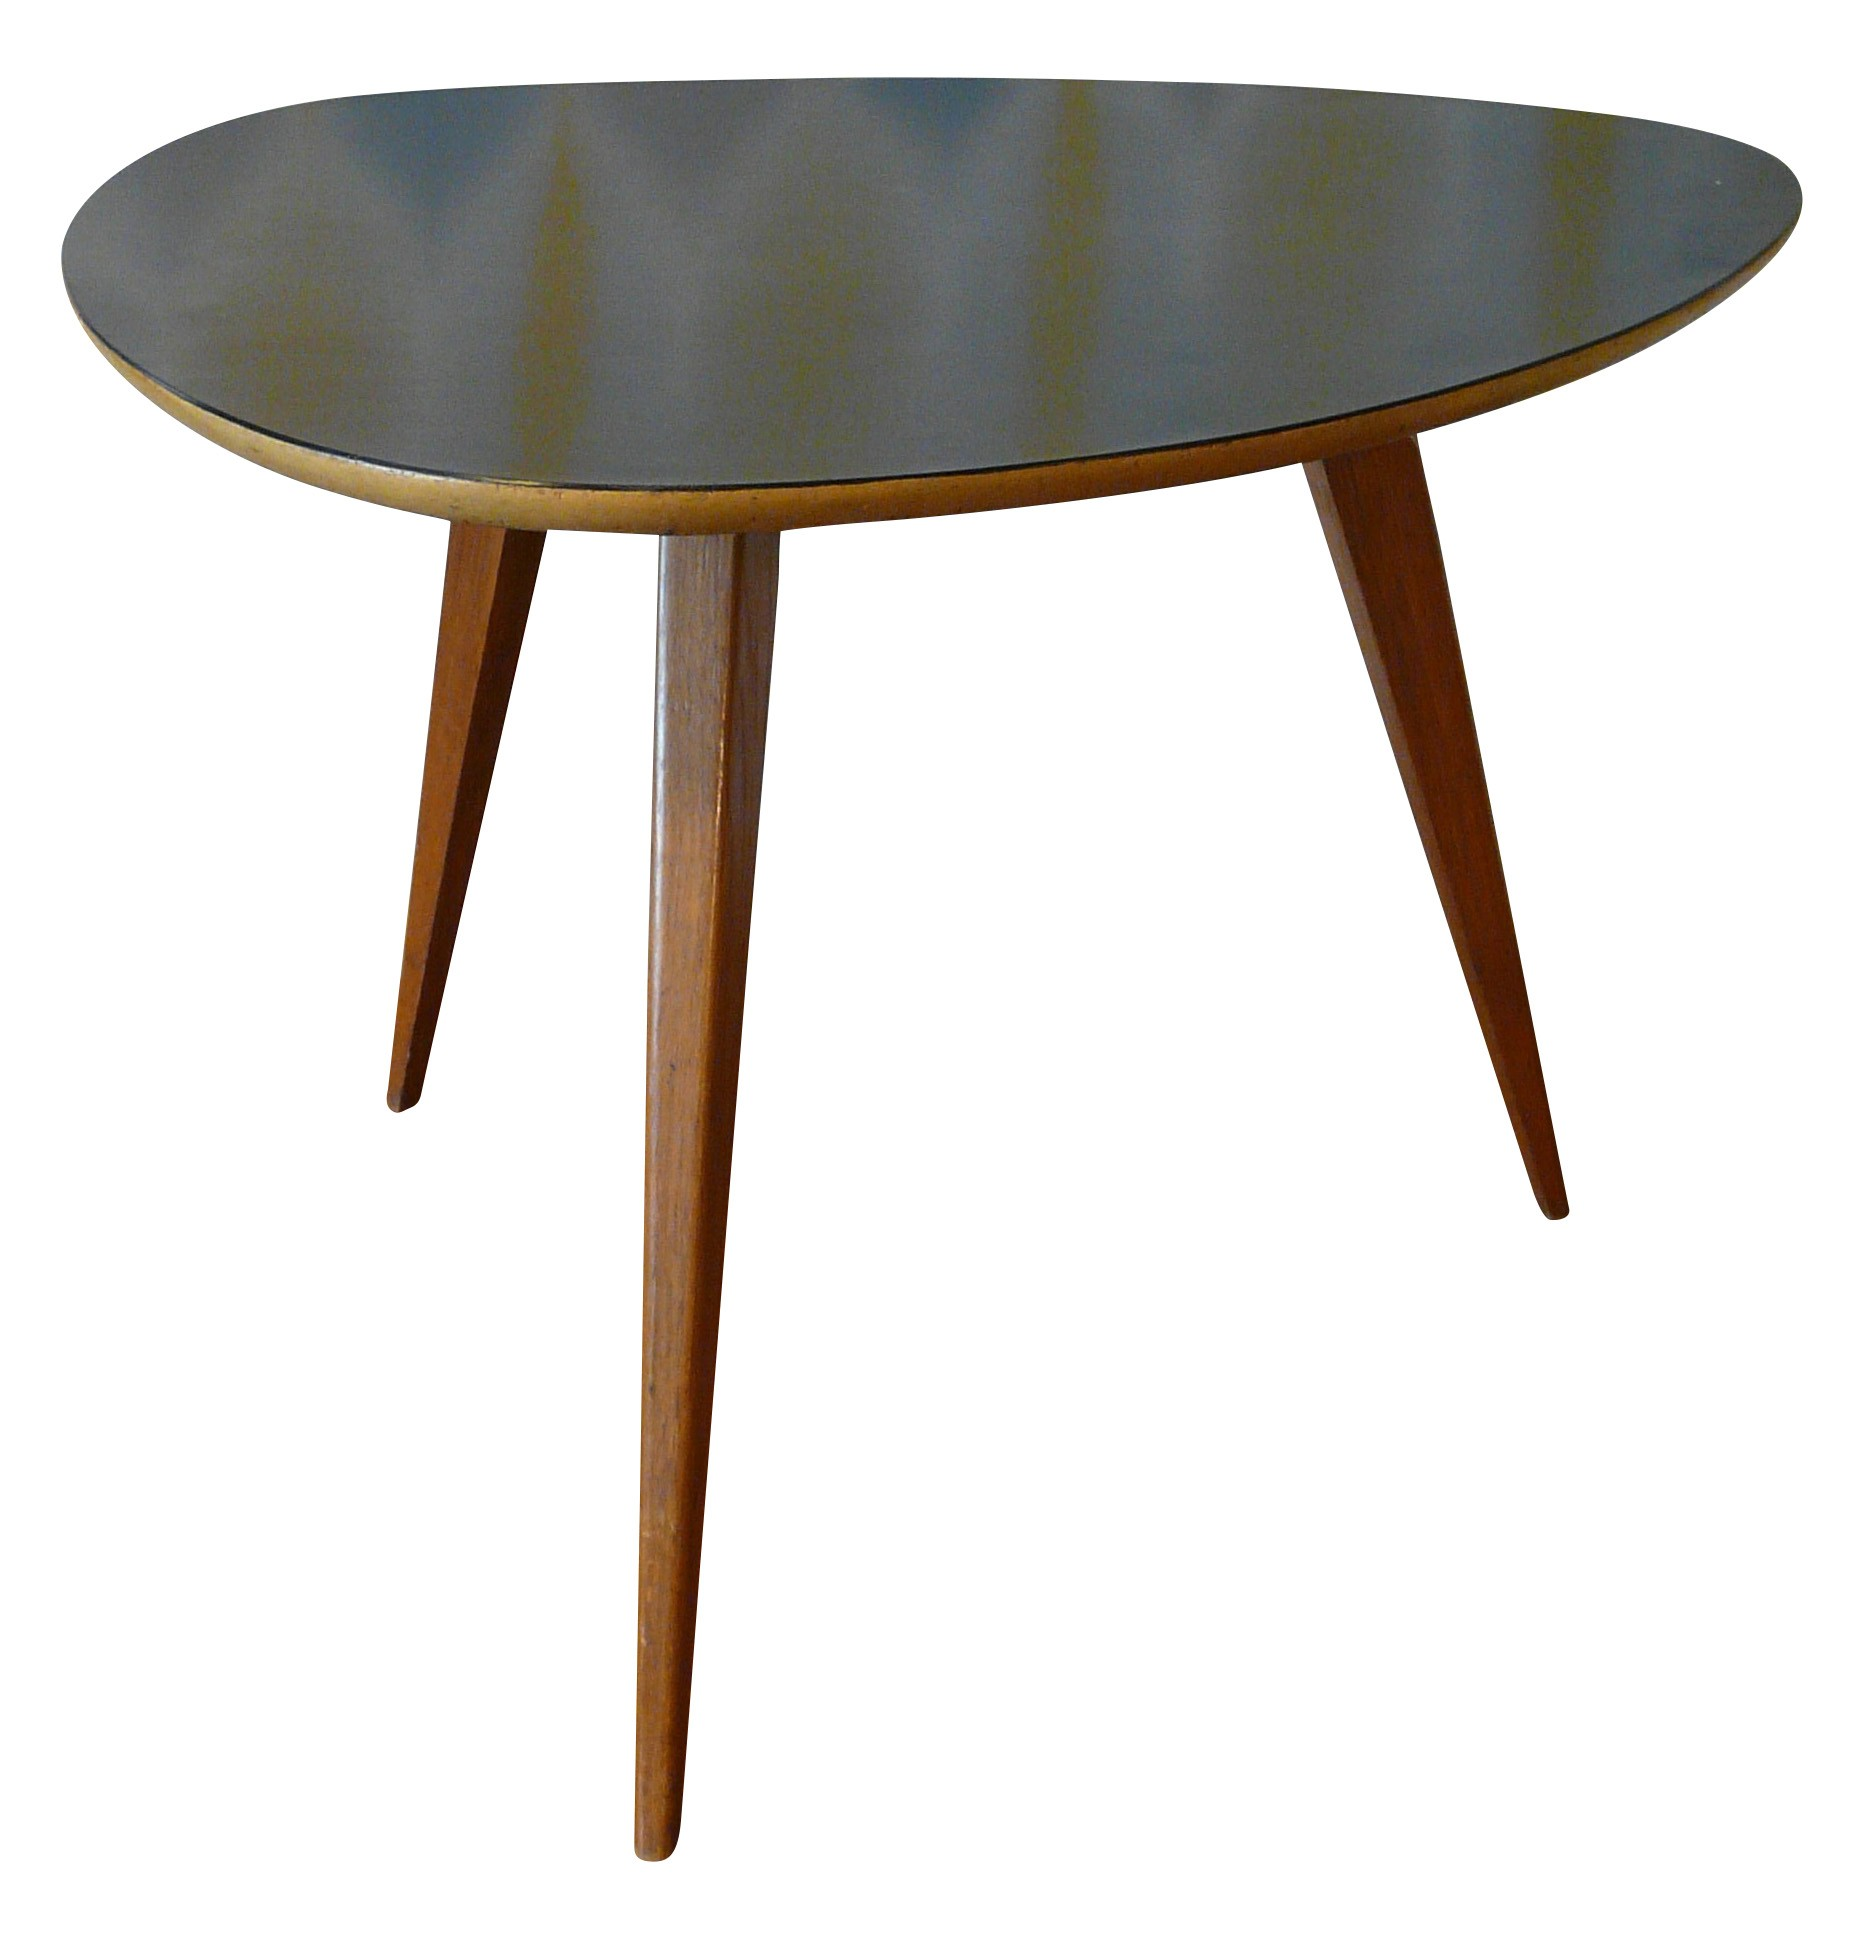 Coffee Table With 3 Legs In Wood And